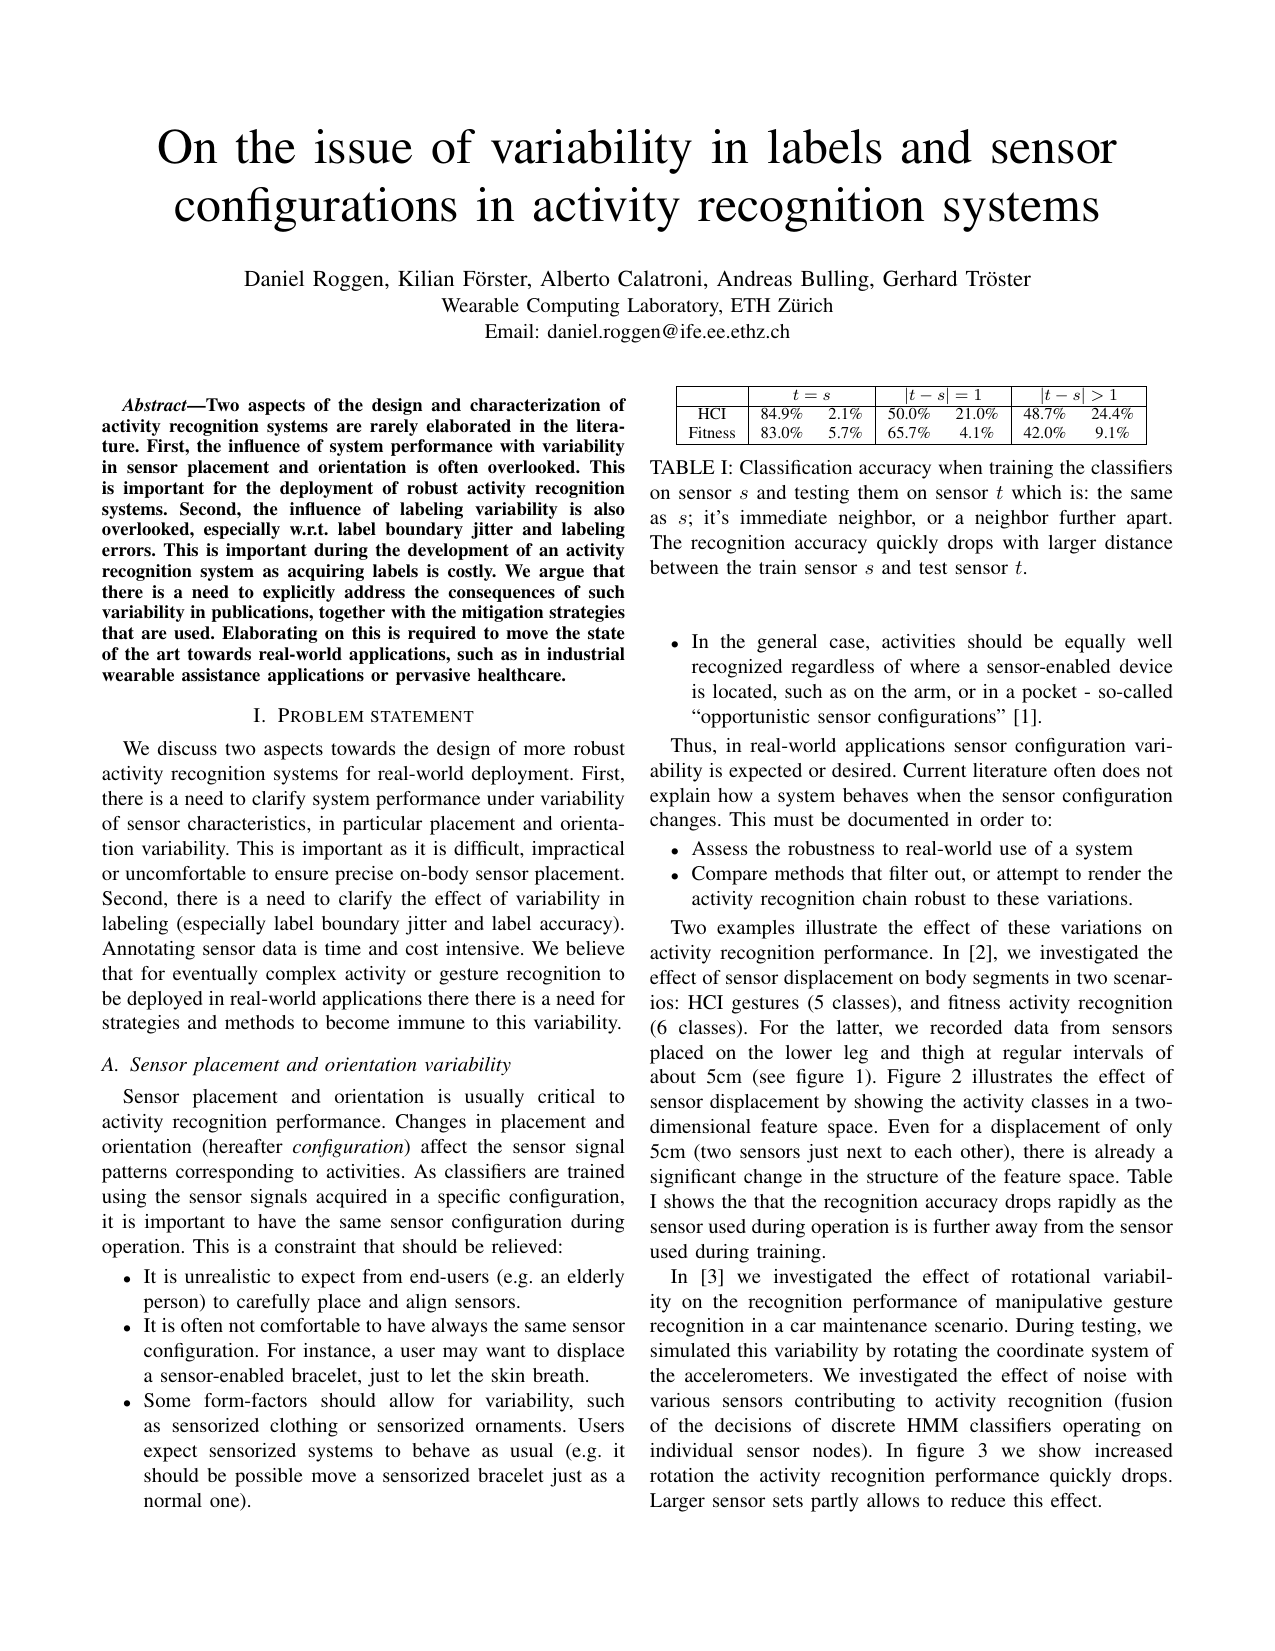 On the issue of variability in labels and sensor configurations in activity recognition systems